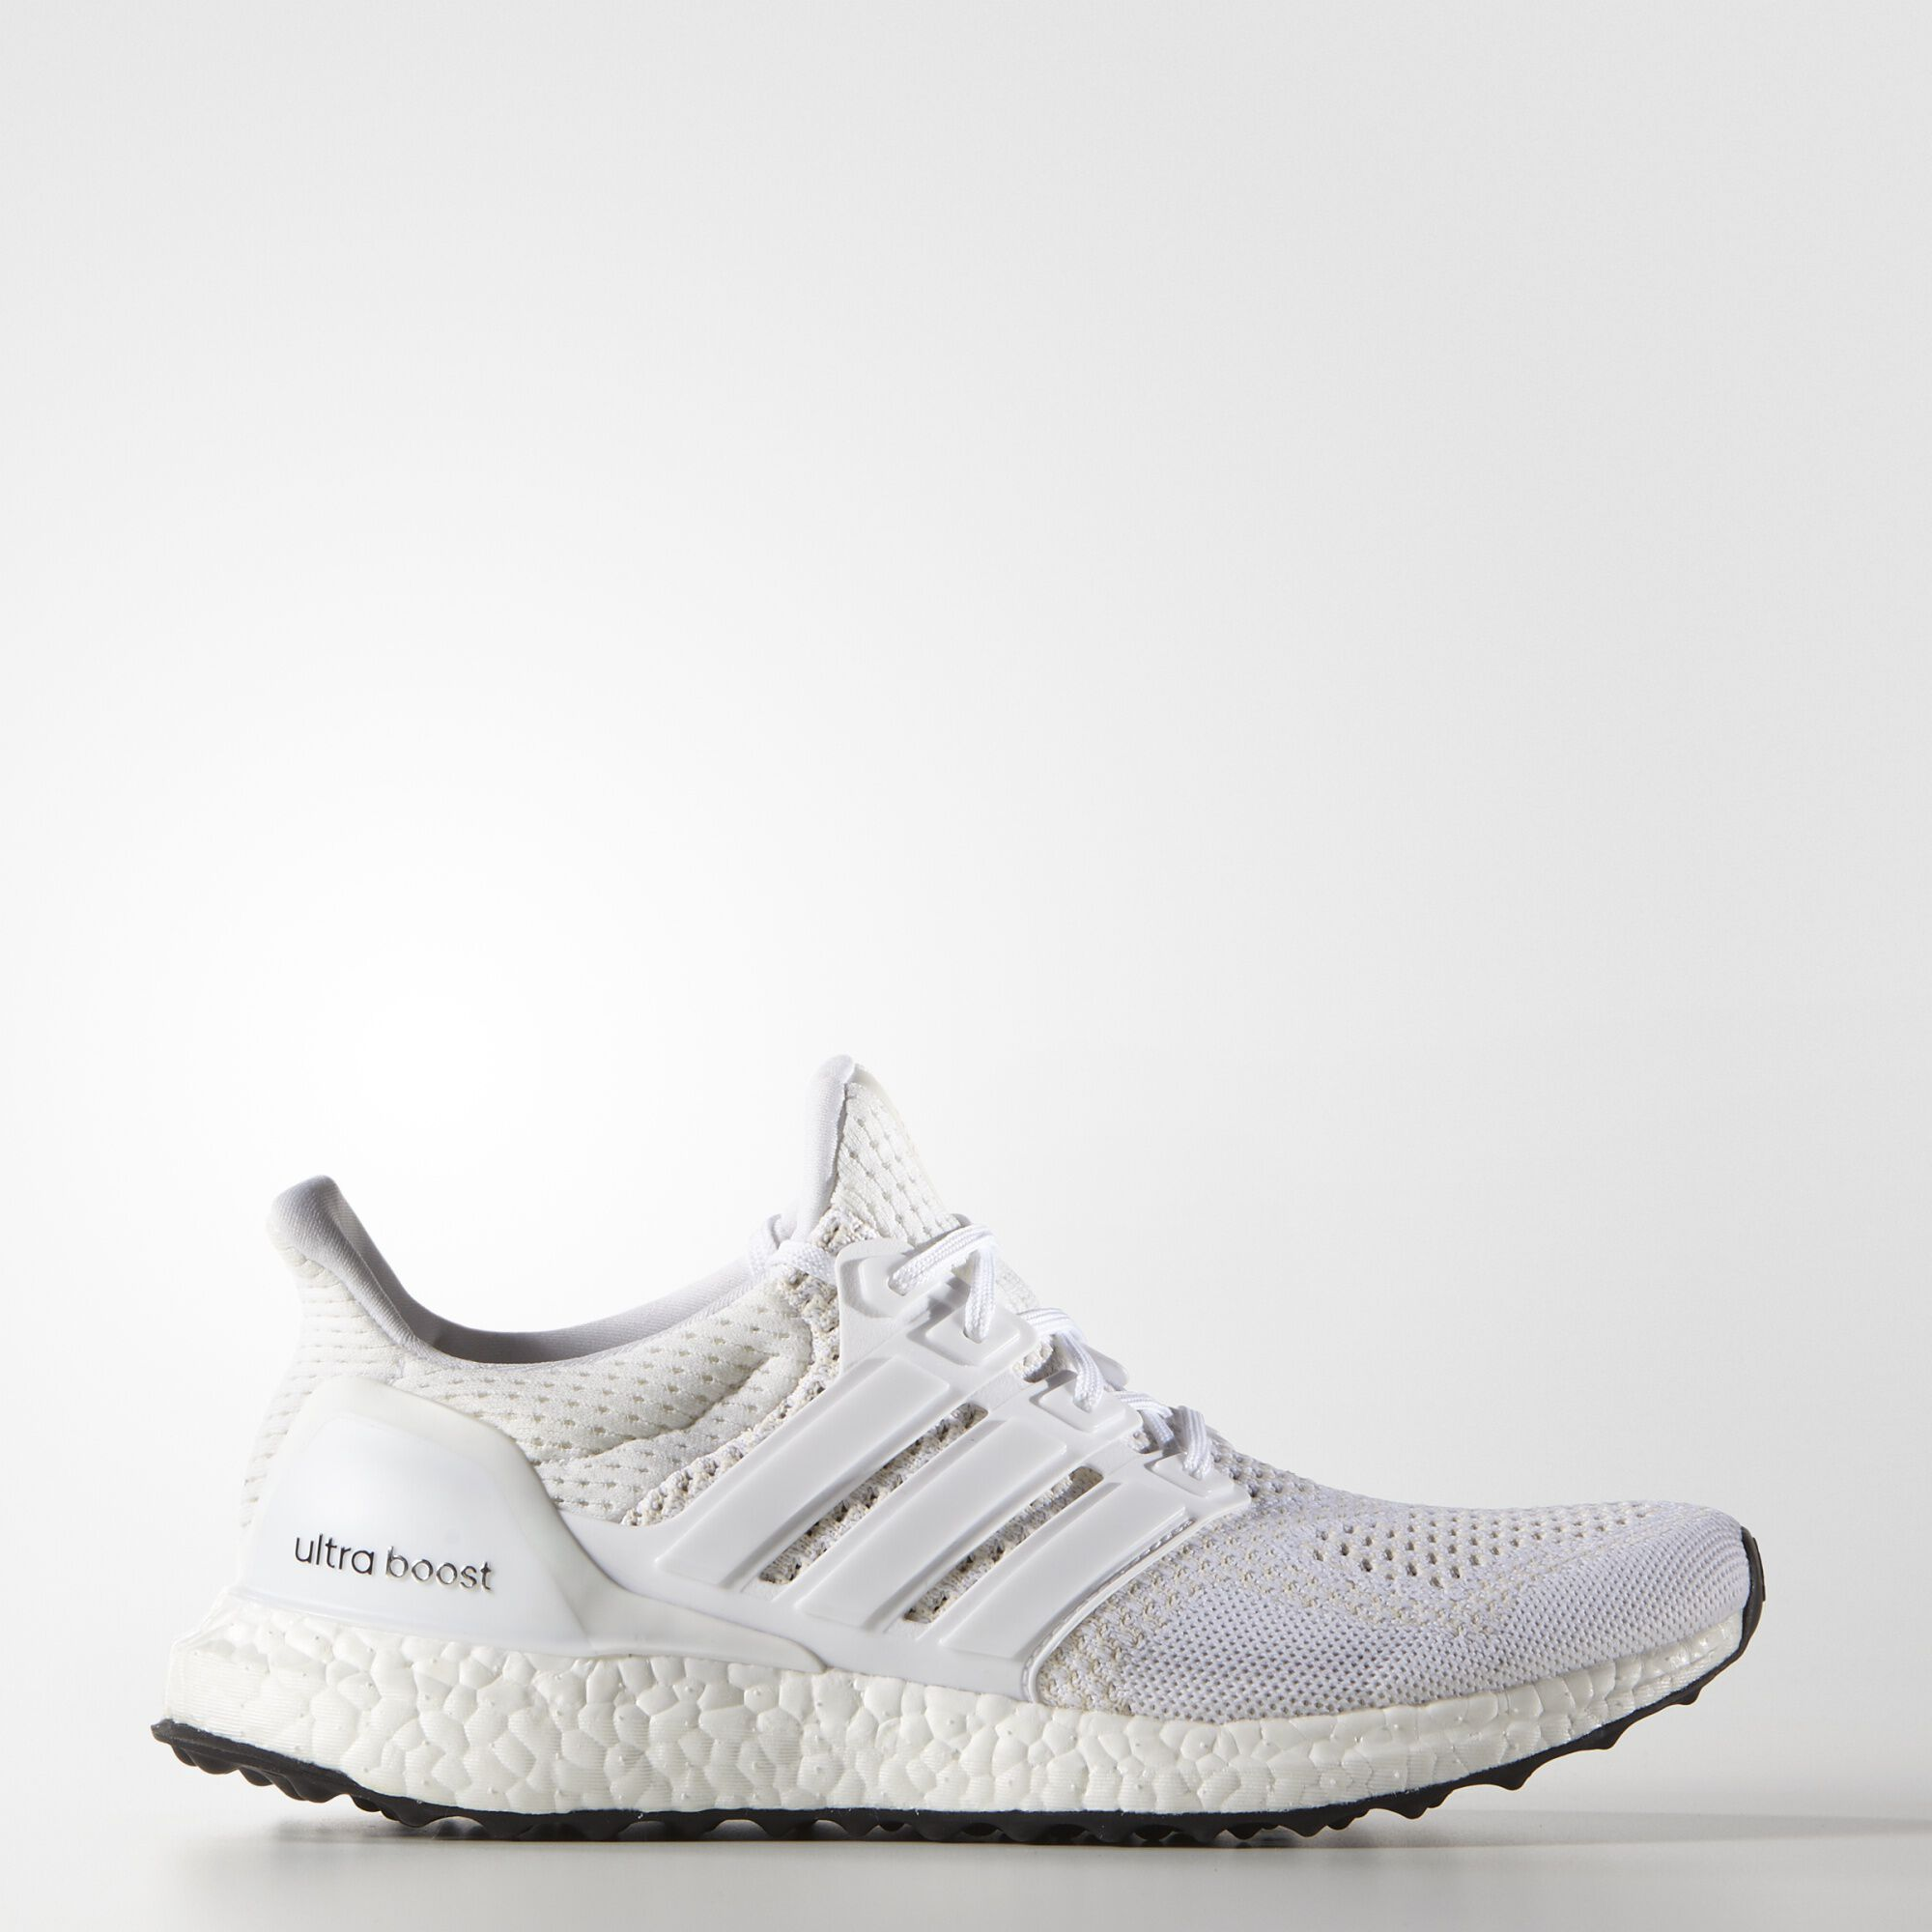 375014266949 Adidas Ultra Boost White Amazon usapokergame.co.uk